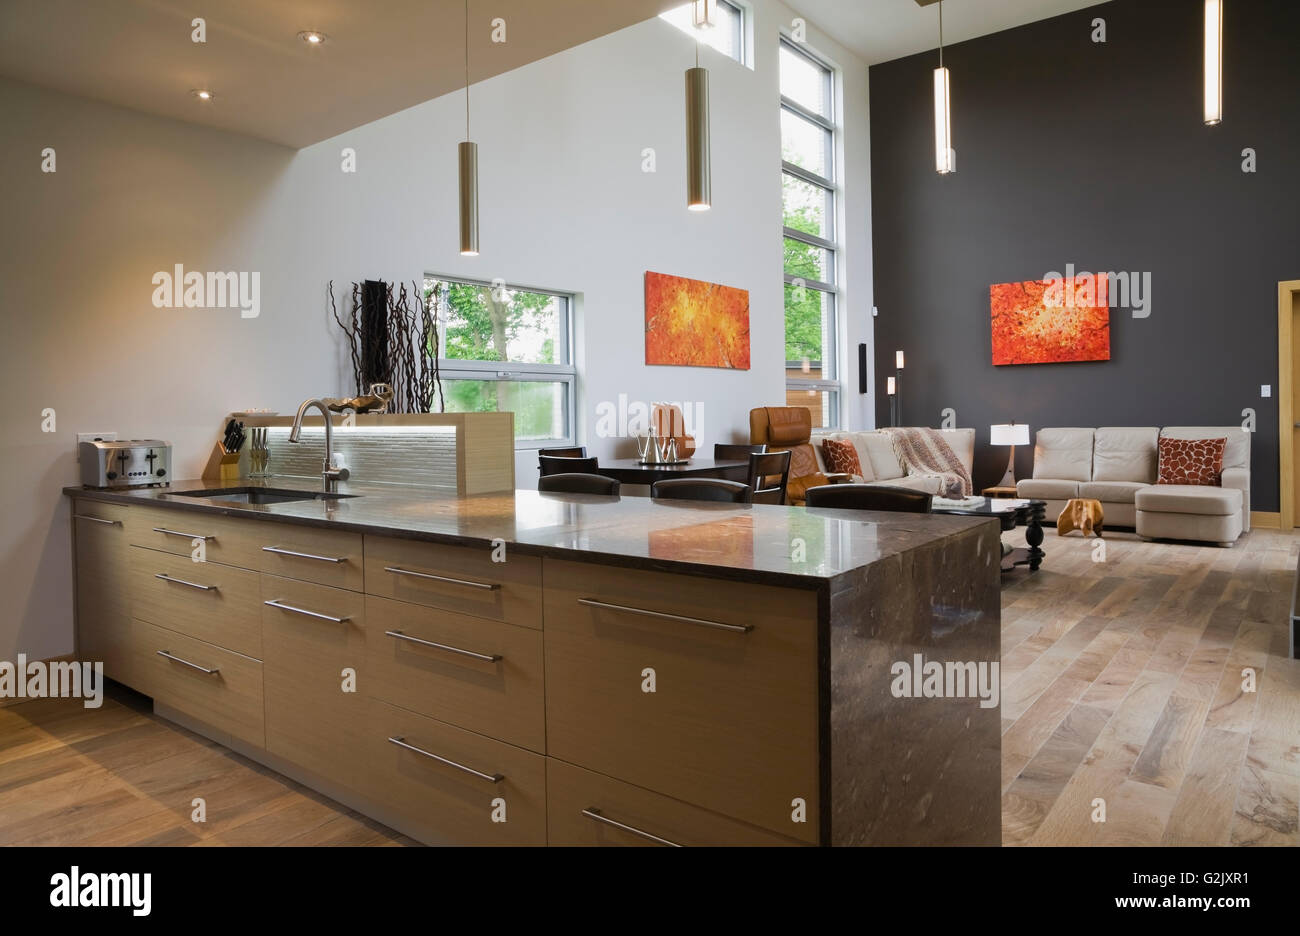 Island Dark Grey Marble Countertop Sink In Kitchen View Living Room Inside A Modern Cubist Style Residential Home Quebec Canada